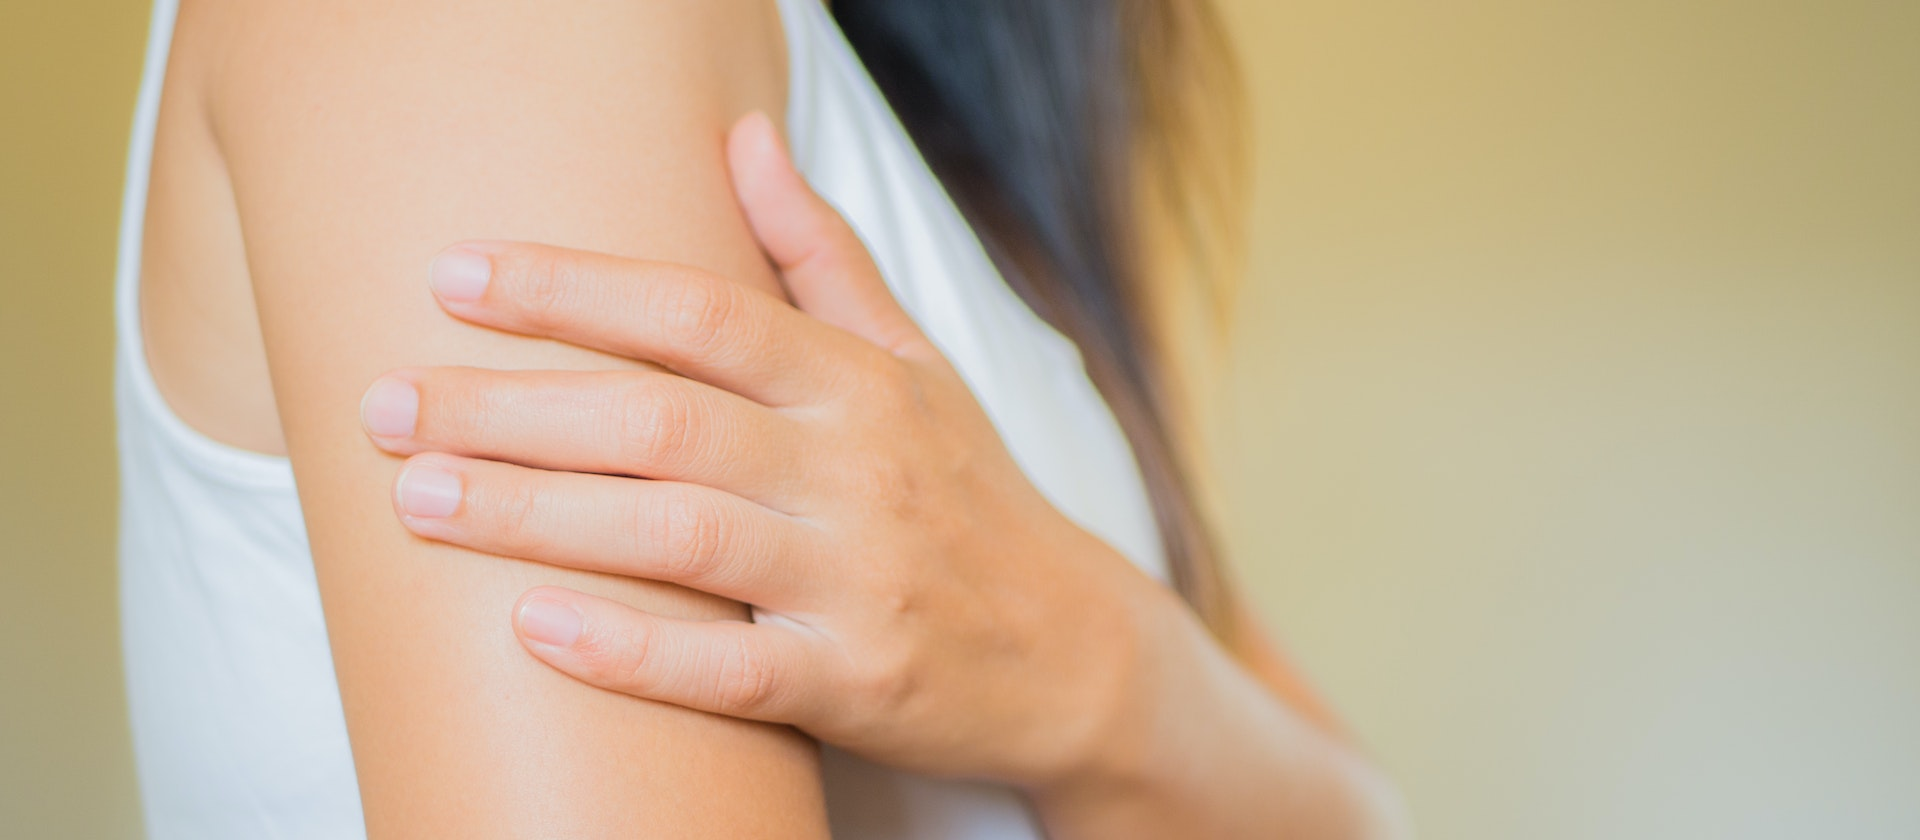 pink or red arm bump symptoms causes common questions buoy